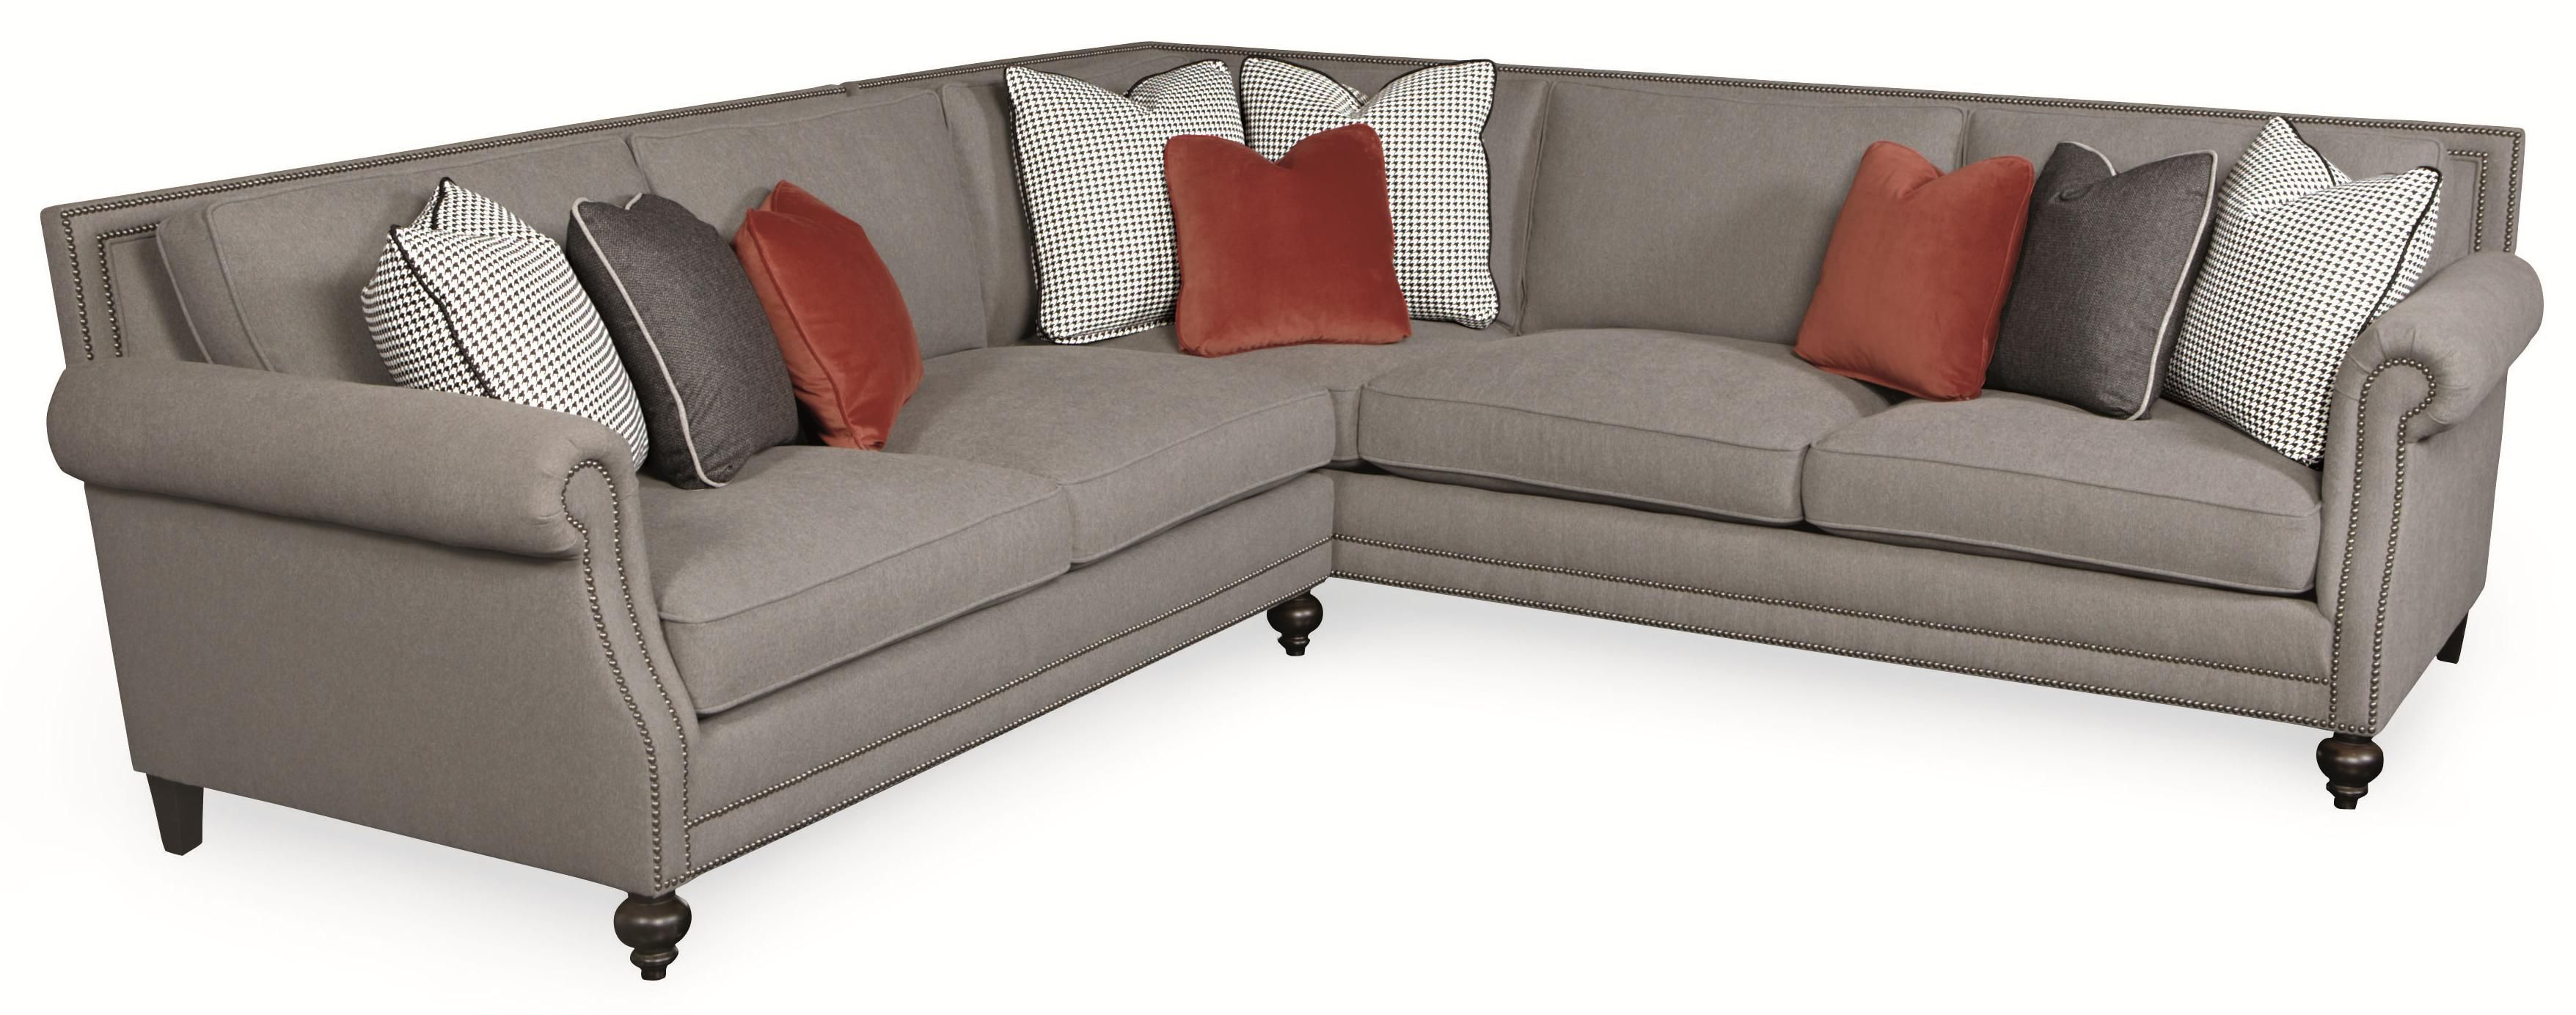 Terrific Brae Five Seat Sectional Sofa With Transitional Style By Interior Design Ideas Oxytryabchikinfo